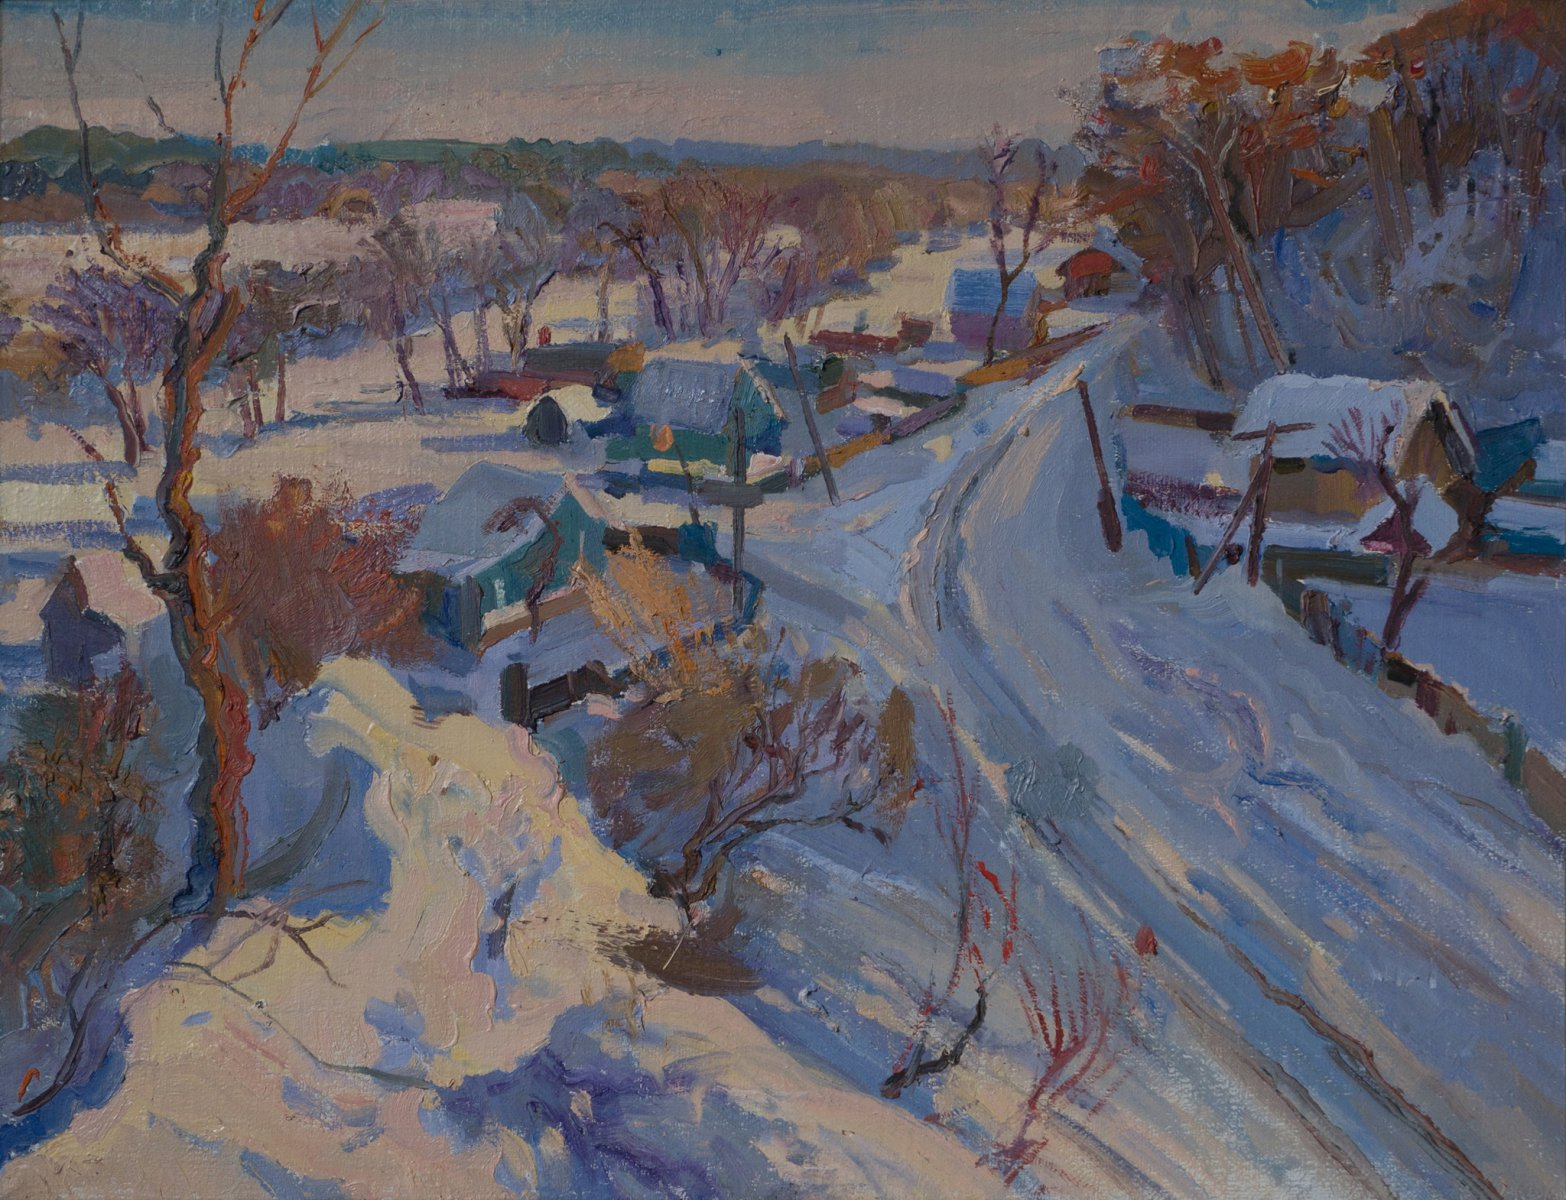 Winter in Sednev - Victor Onyshchenko